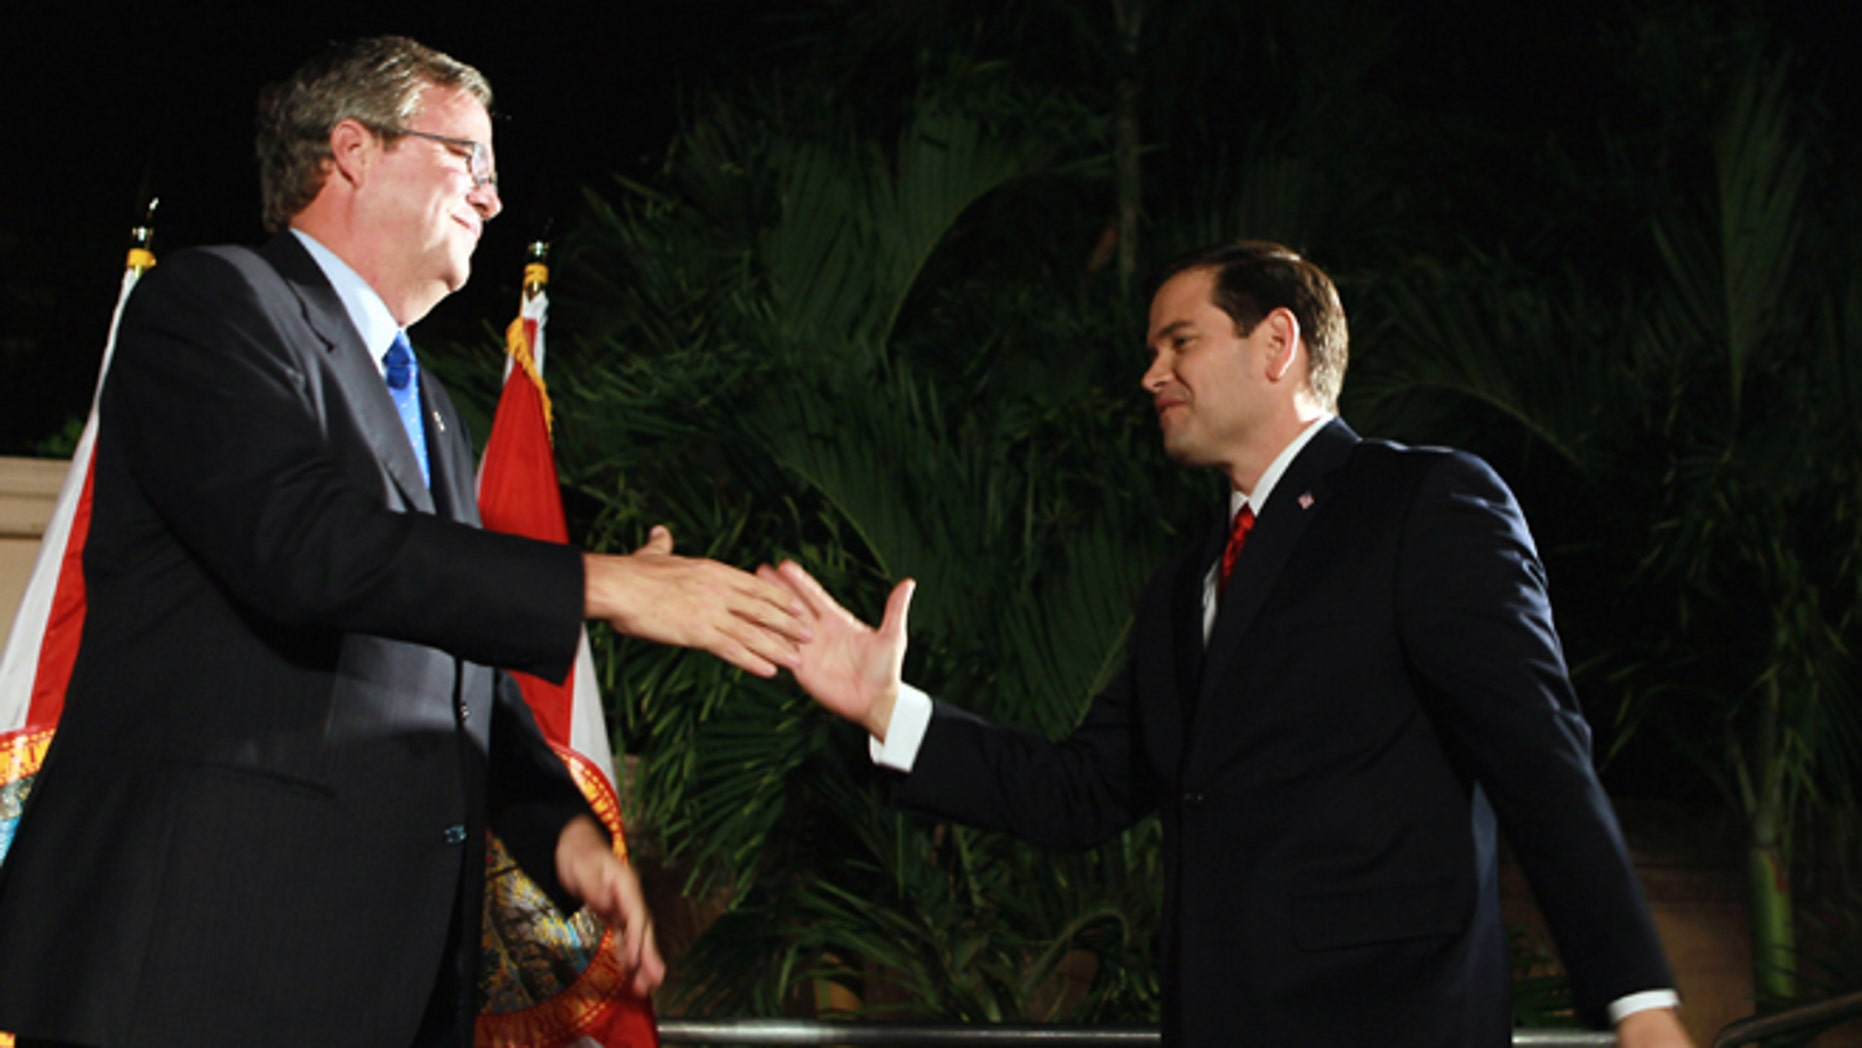 Marco Rubio (R) and former Governor of Florida Jeb Bush on November 2, 2010, in Coral Gables, Florida, the night Rubio defeated Florida Gov. Charlie Crist to win his seat in the U.S. Senate.  (Photo by Joe Raedle/Getty Images)